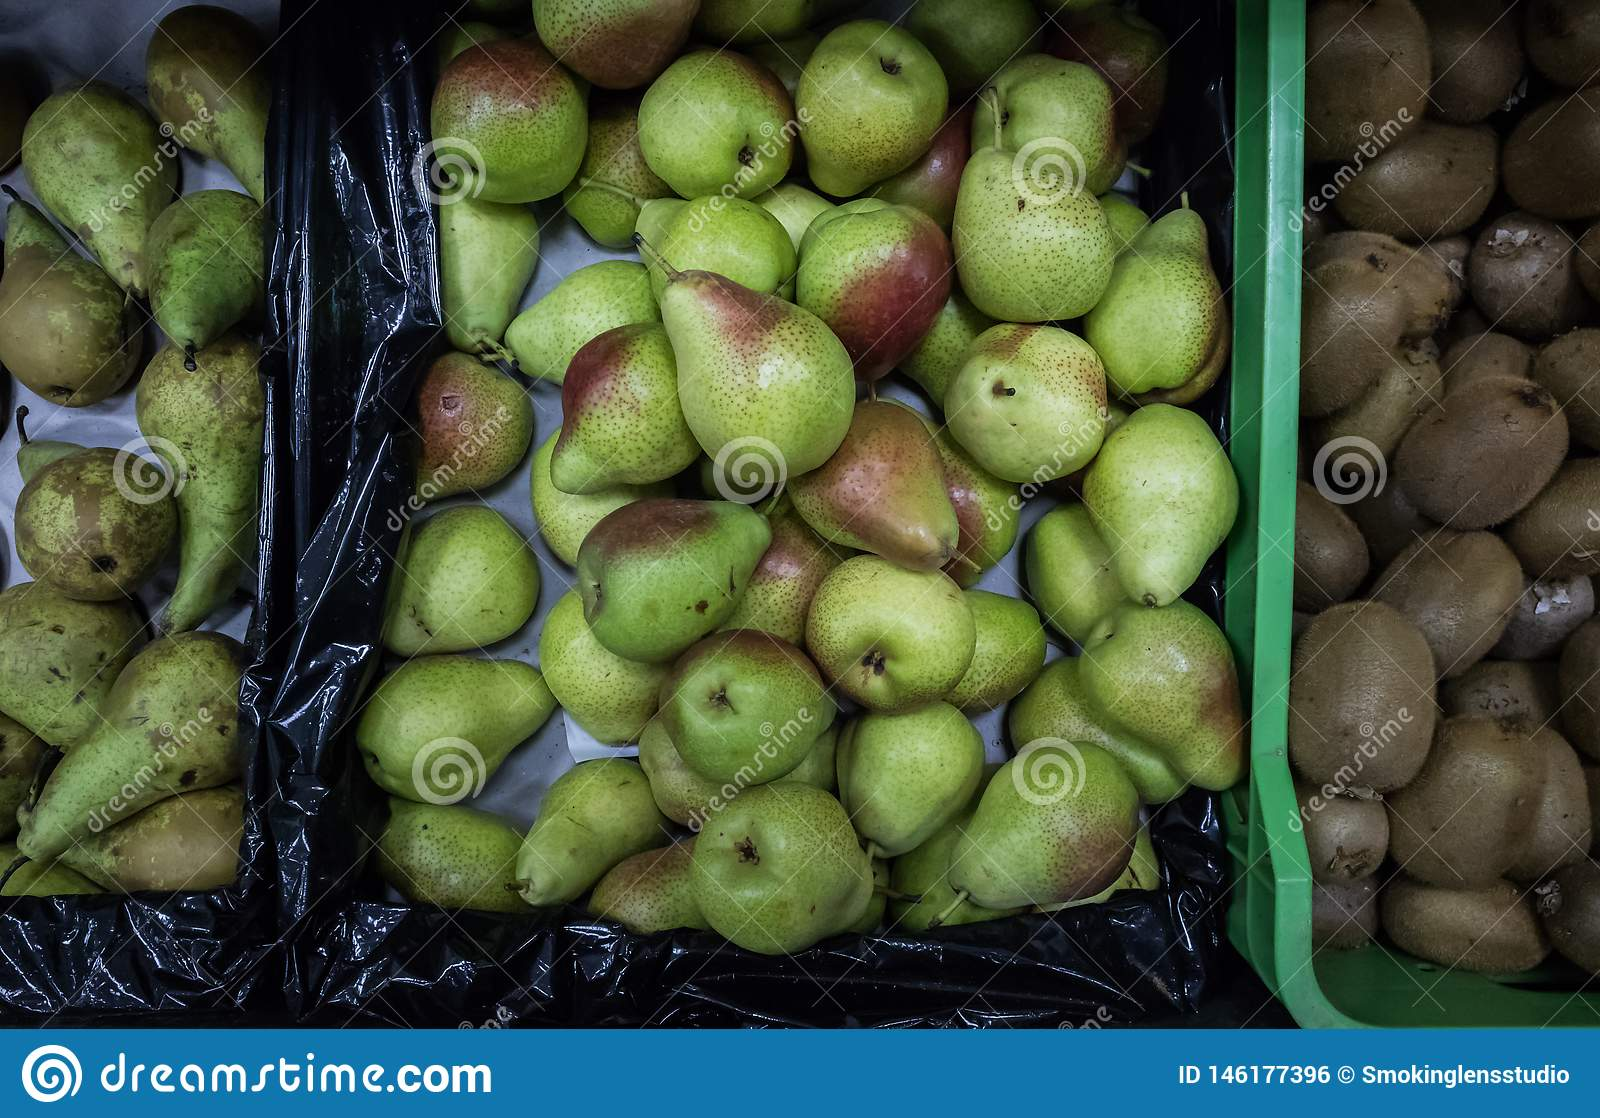 Pears in super market